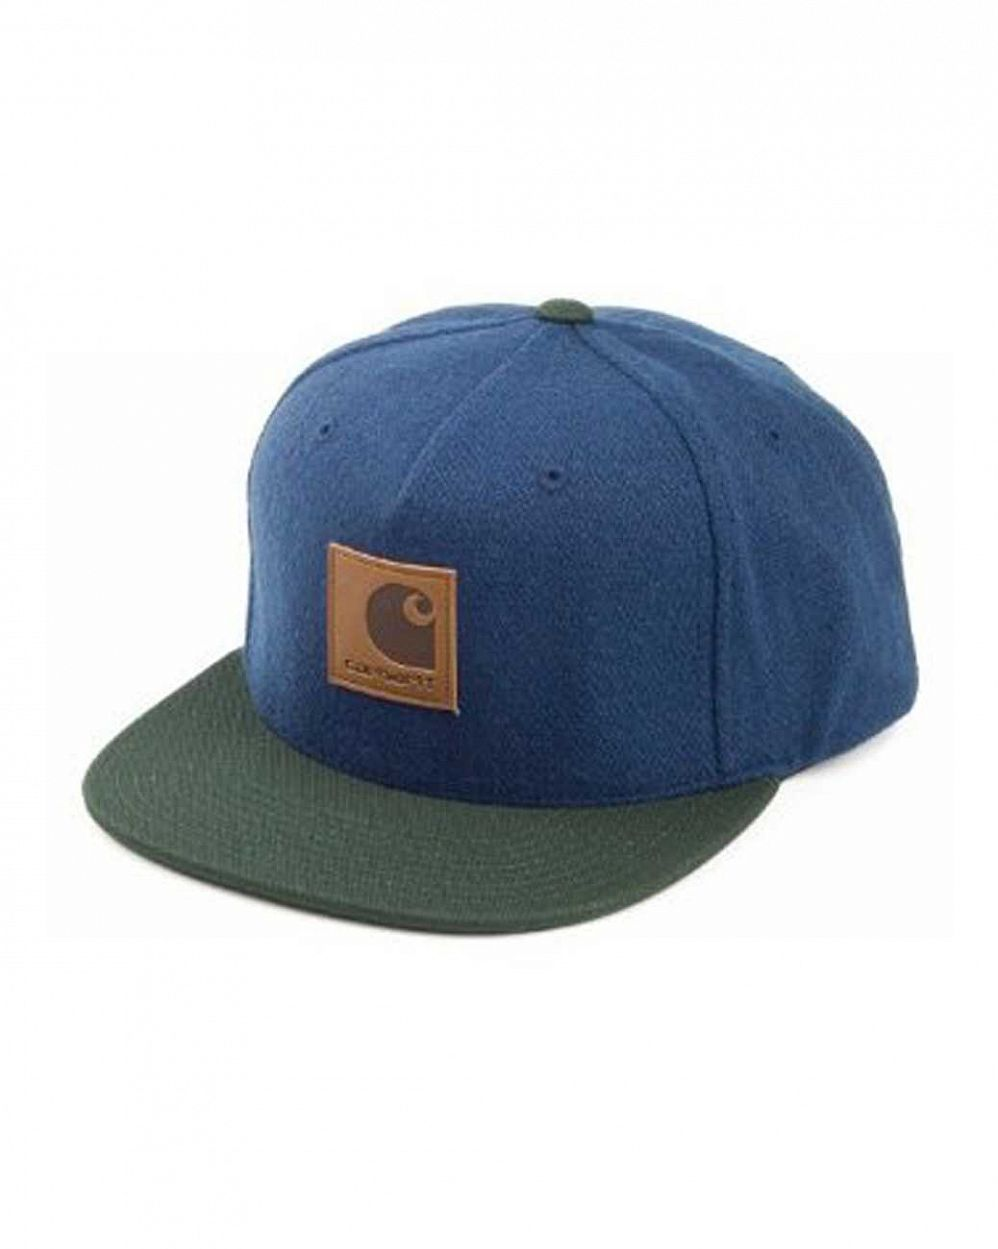 Бейсболка Carhartt neal starter cap navy bottle green отзывы